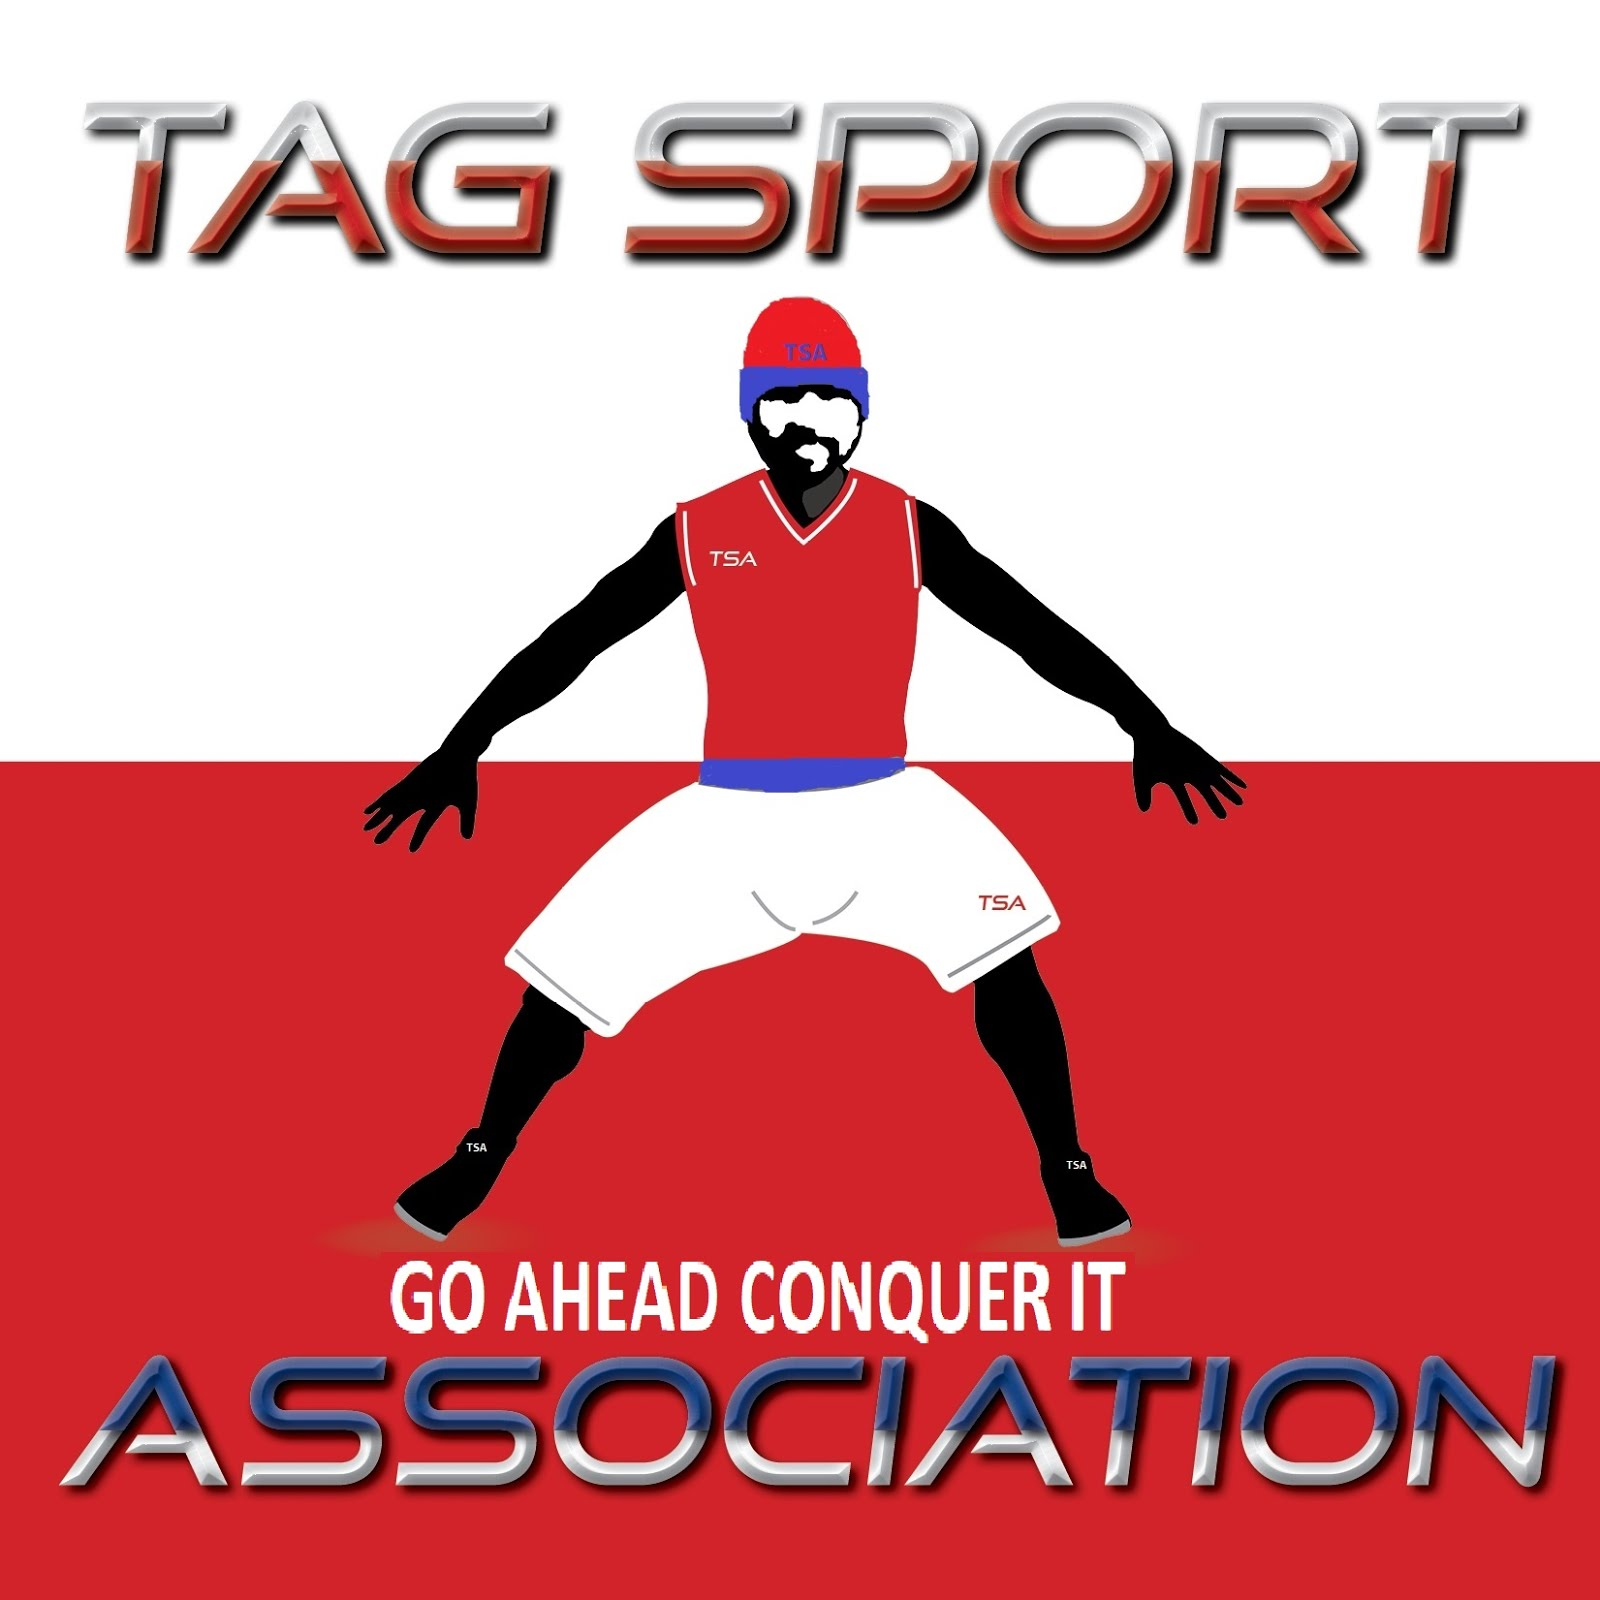 TAG SPORT ASSOCIATION DO NOT PLAY IF YOU ARE NOT GOING TO CONQUER IT